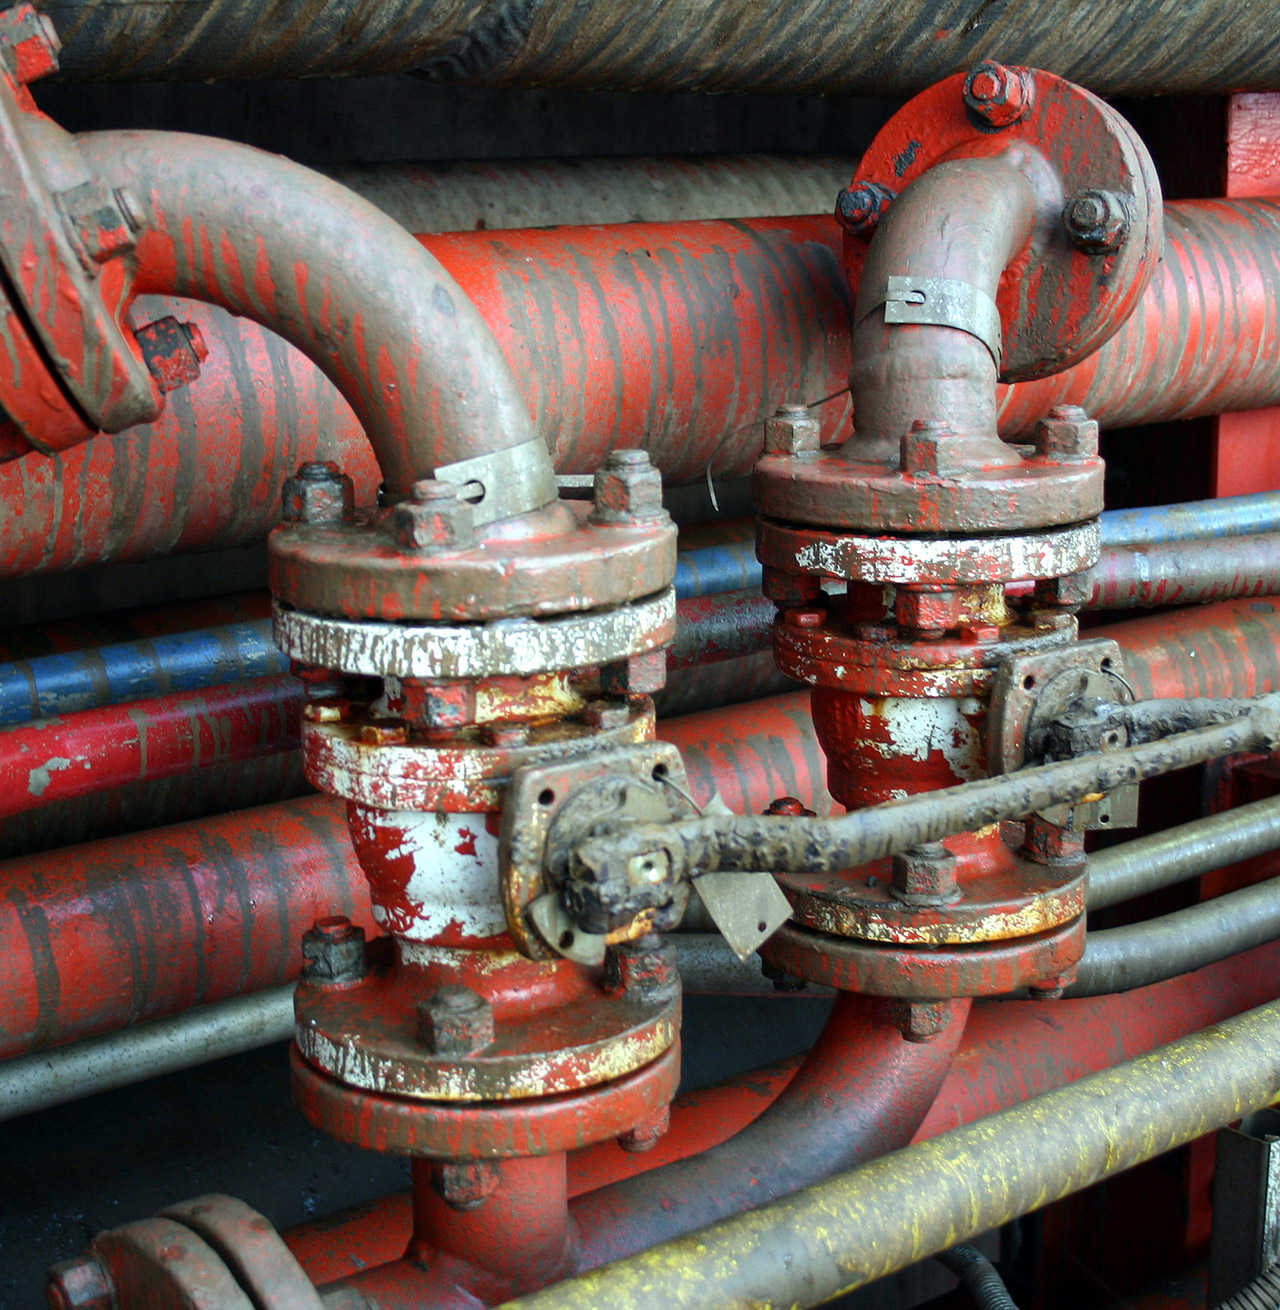 Close up of oil rig piping with red and blue scratched paint